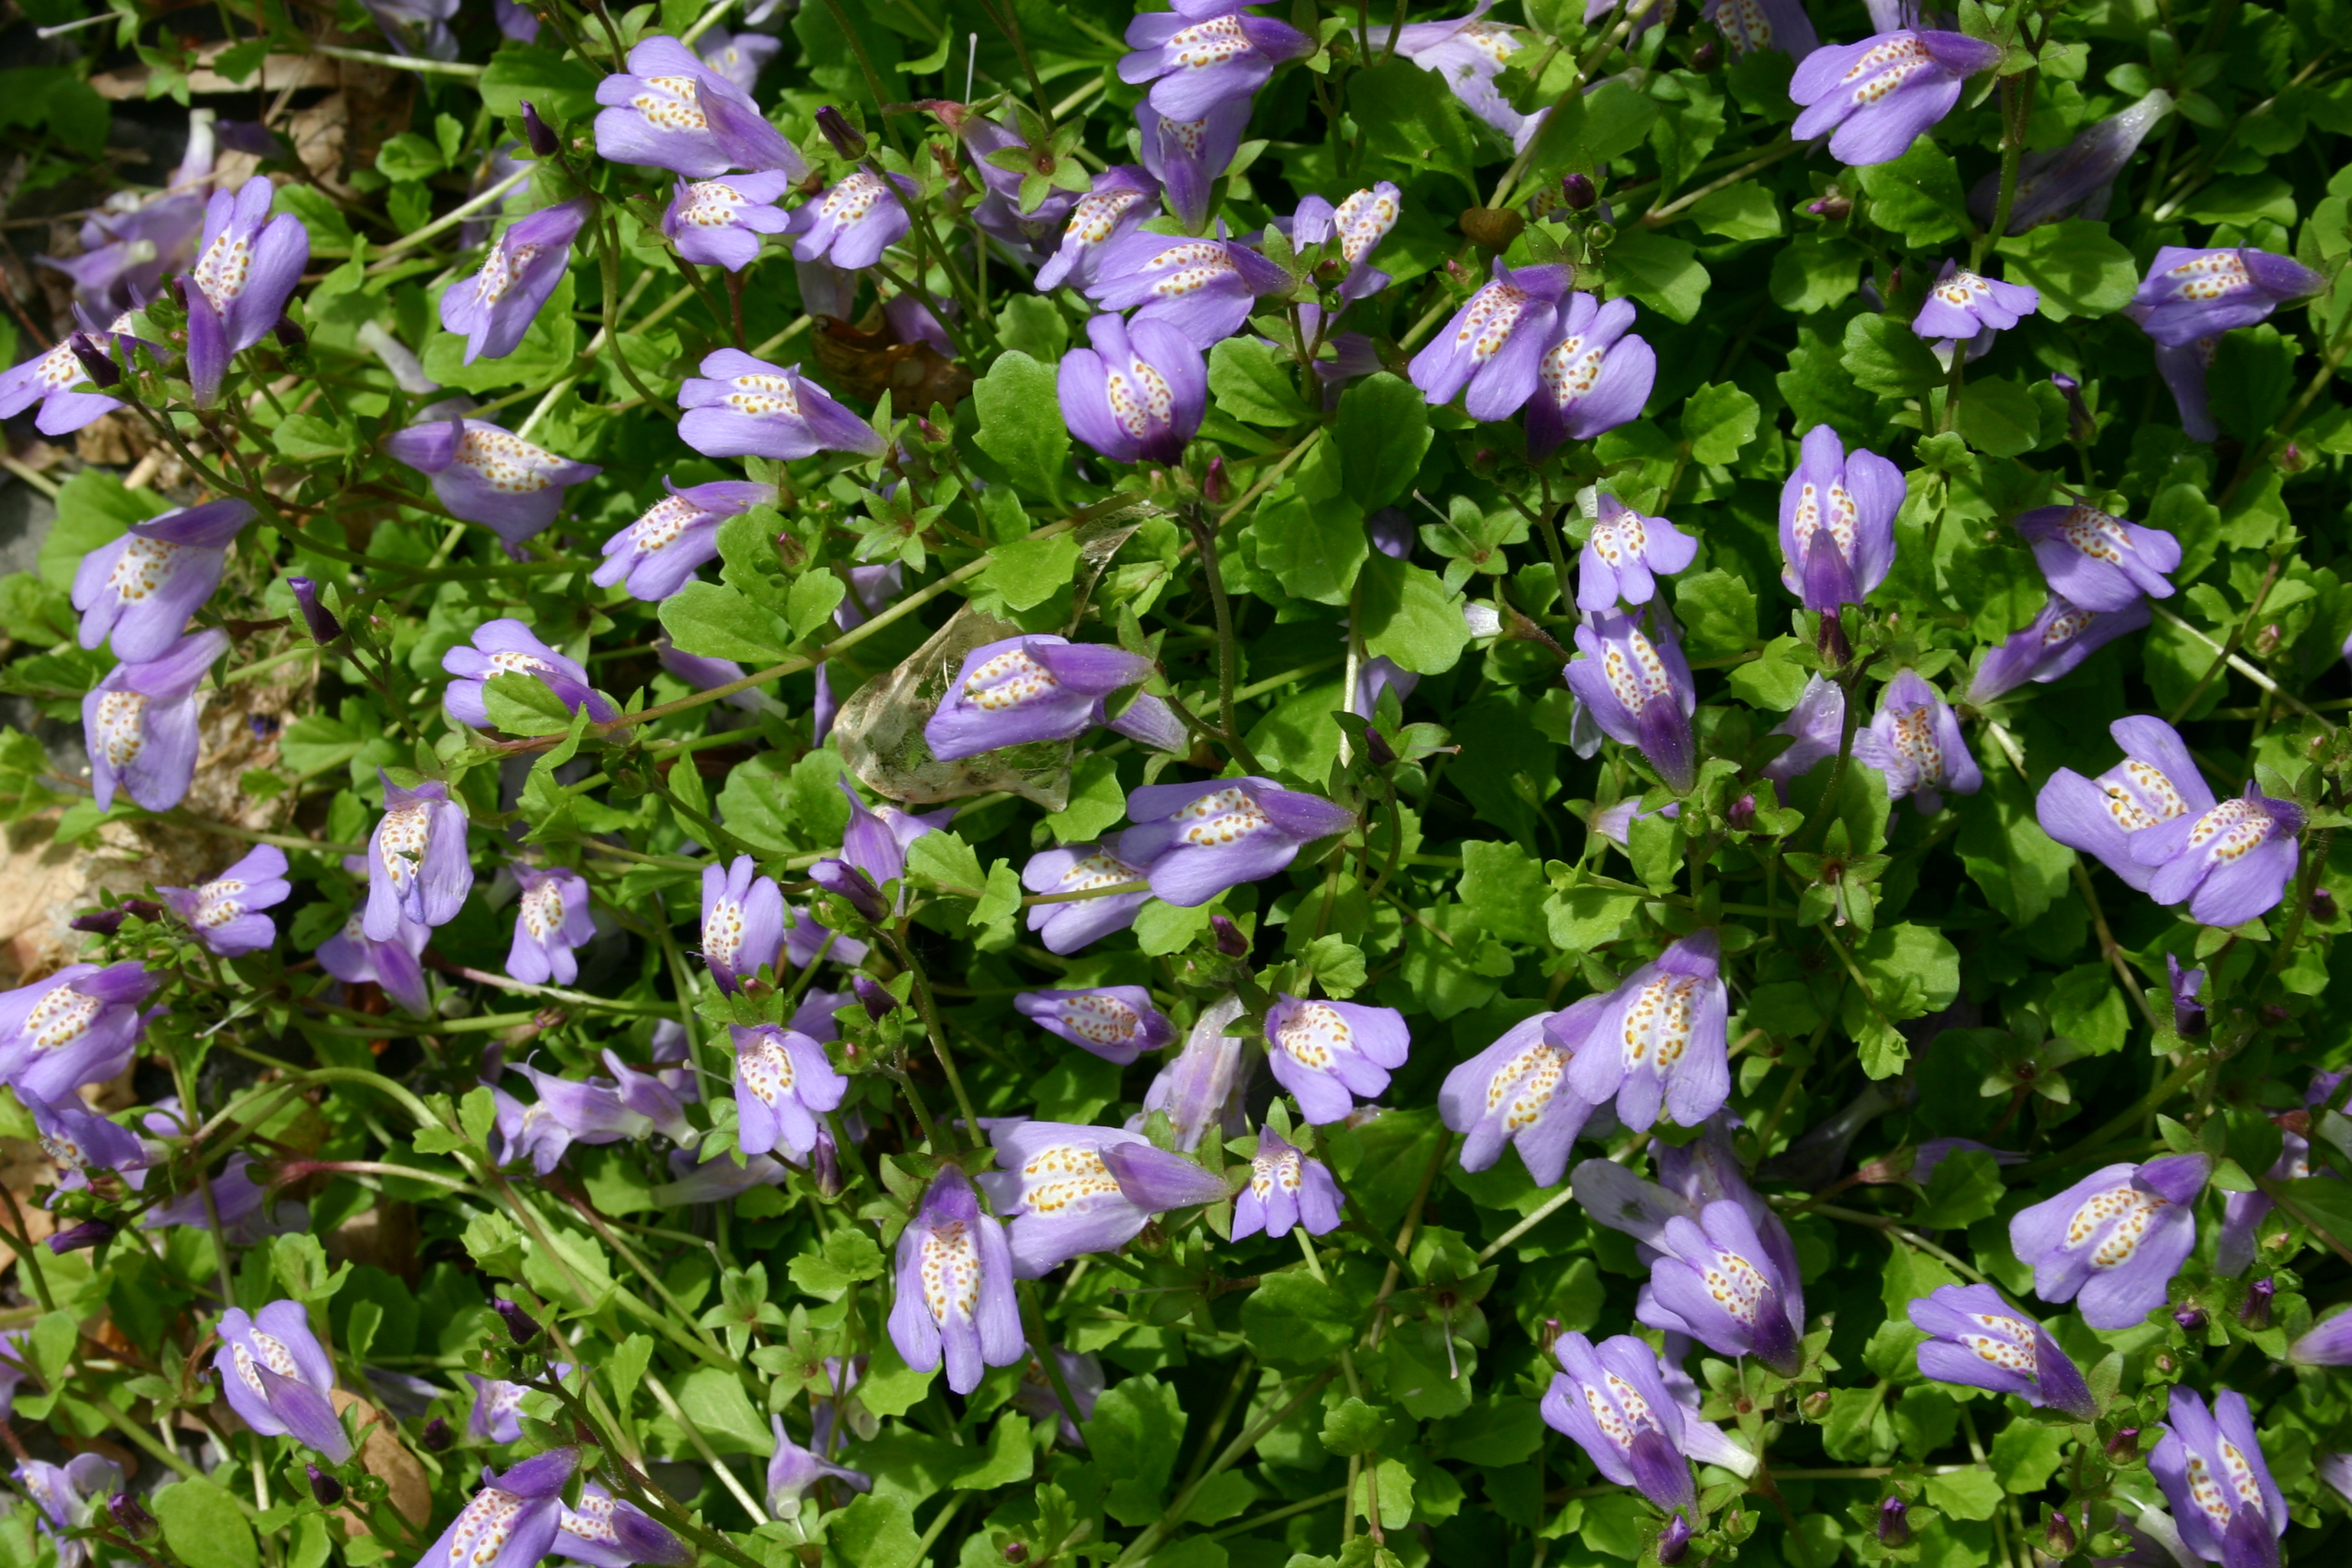 The best flowering ground covers proflowers blog the best flowering ground covers izmirmasajfo